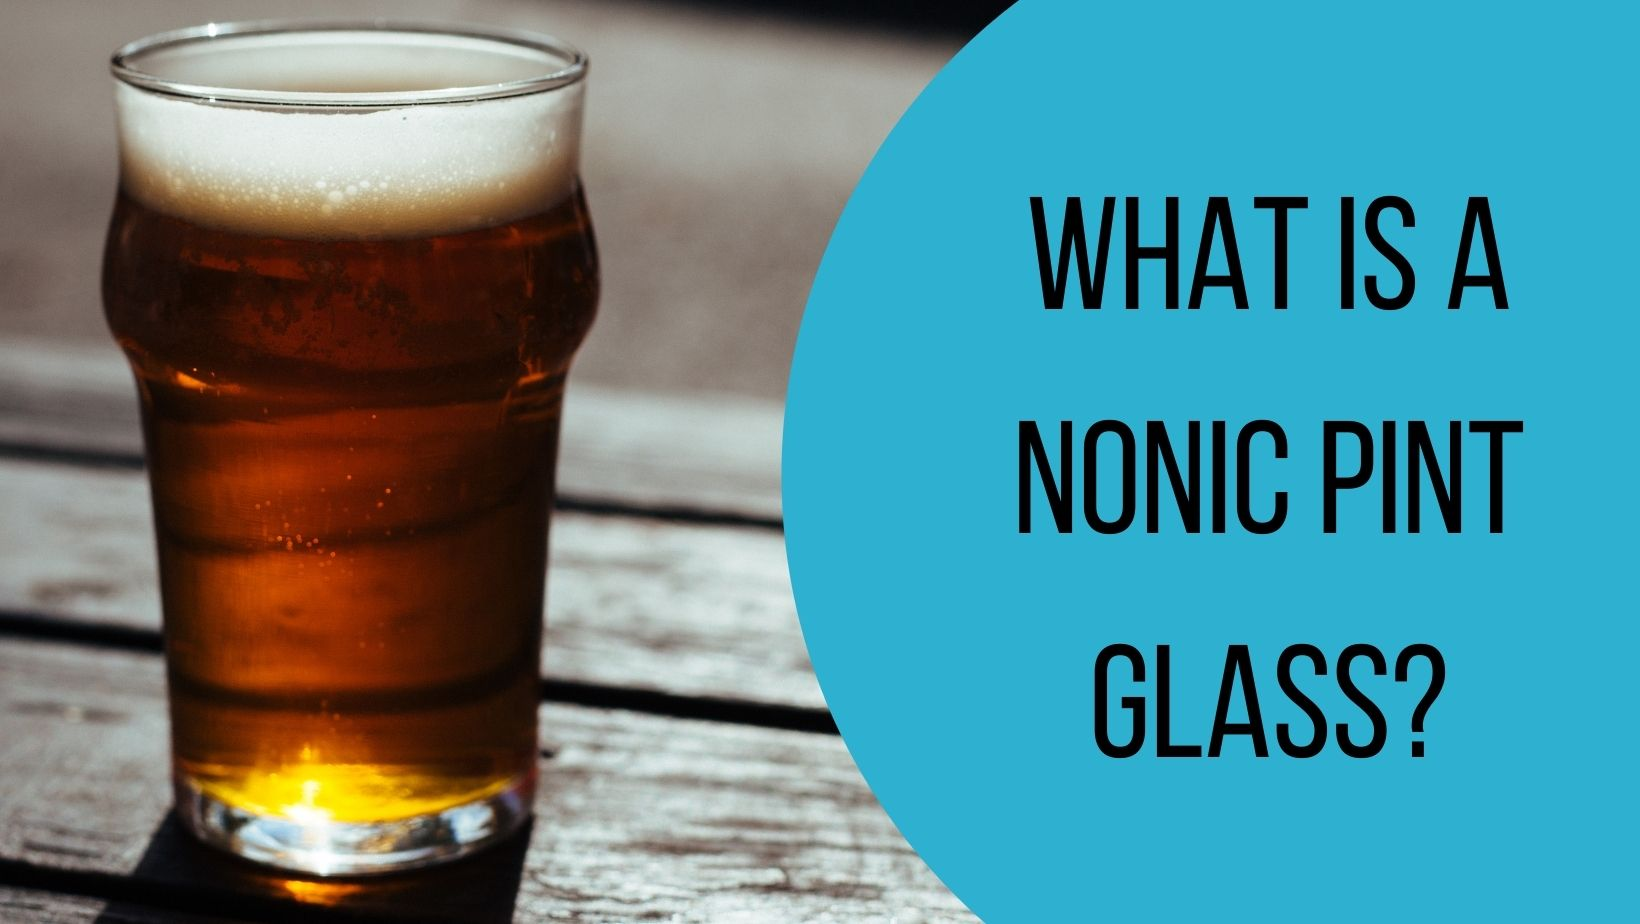 Header image for What is a nonic pint glass